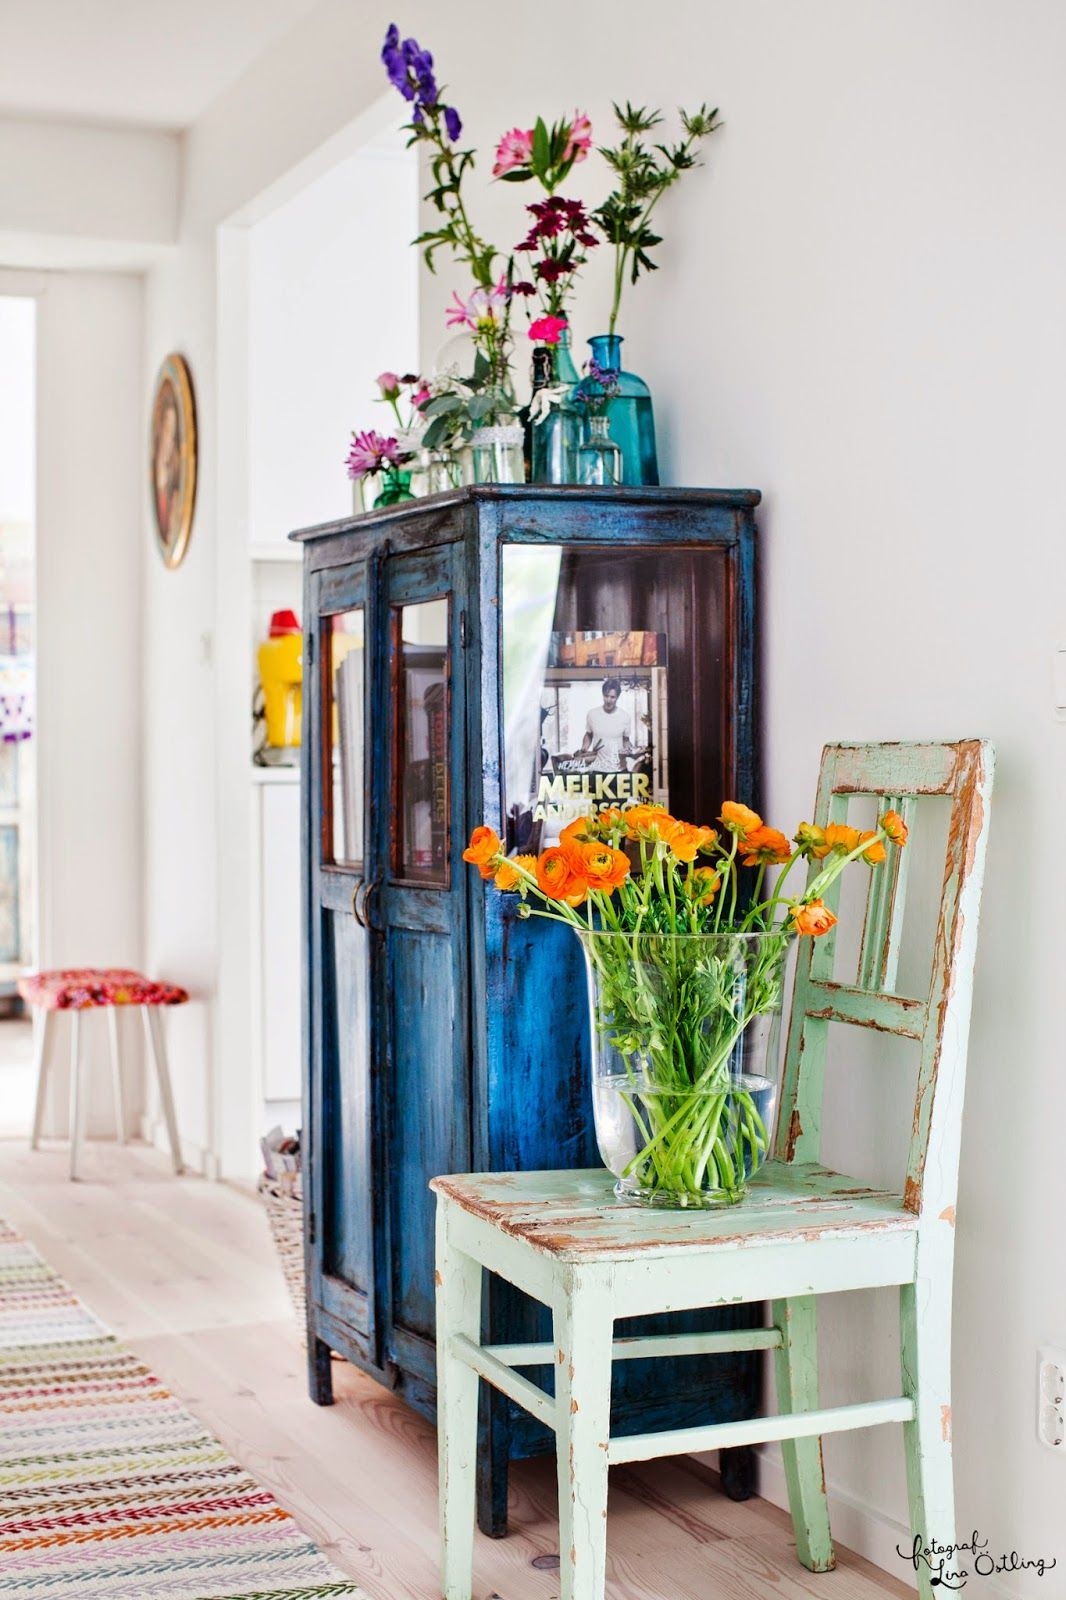 Wooden furniture and freshly picked flowers.